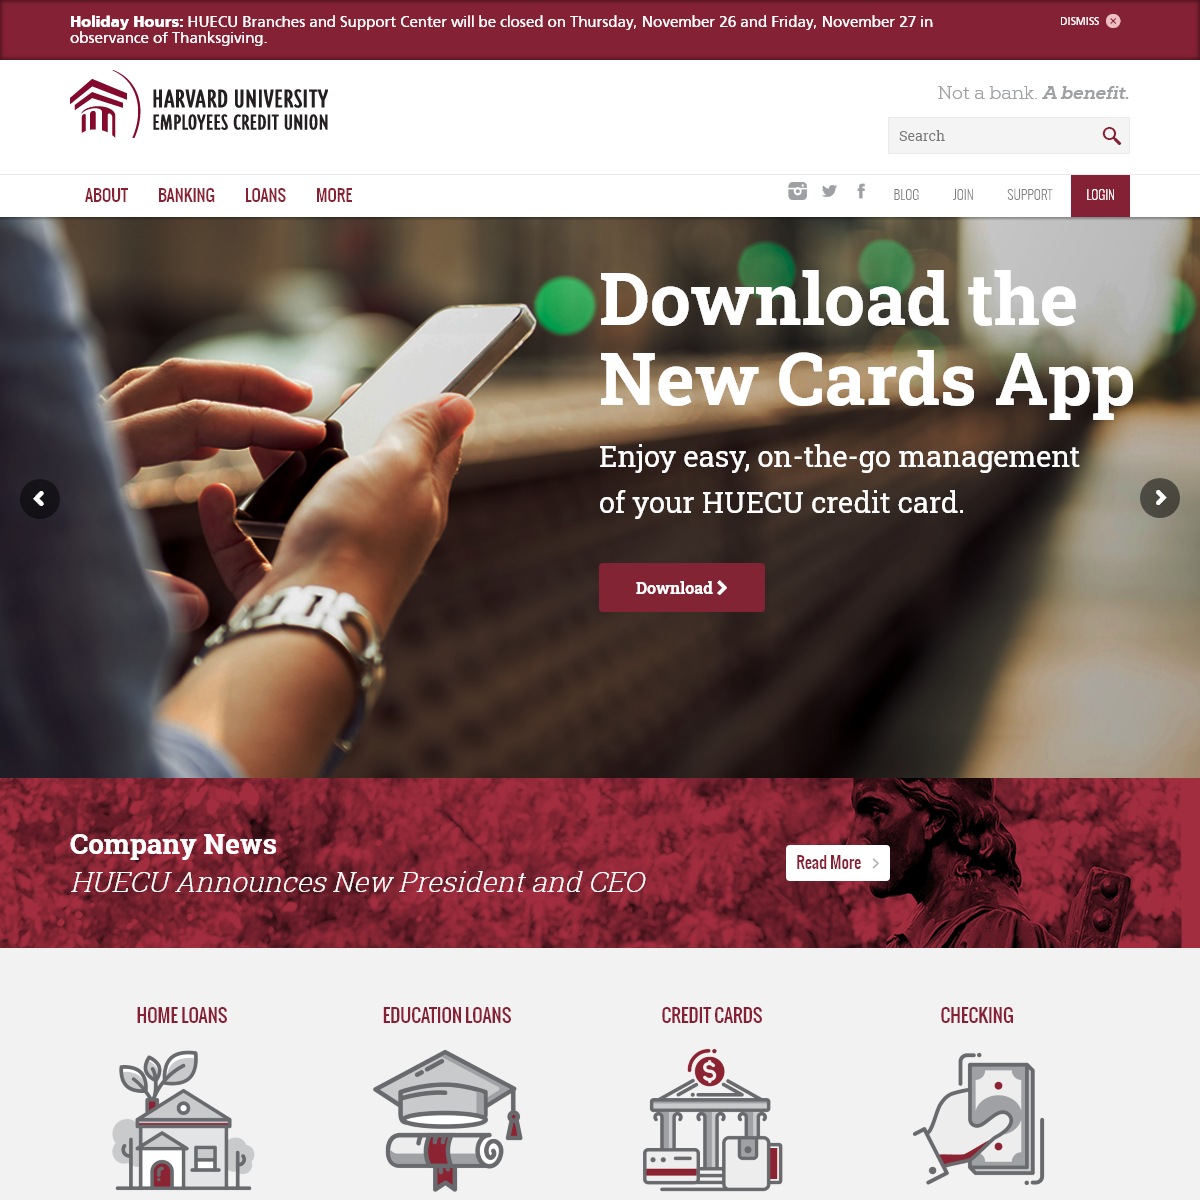 Harvard University Employees Credit Union - Boston, Massachusetts